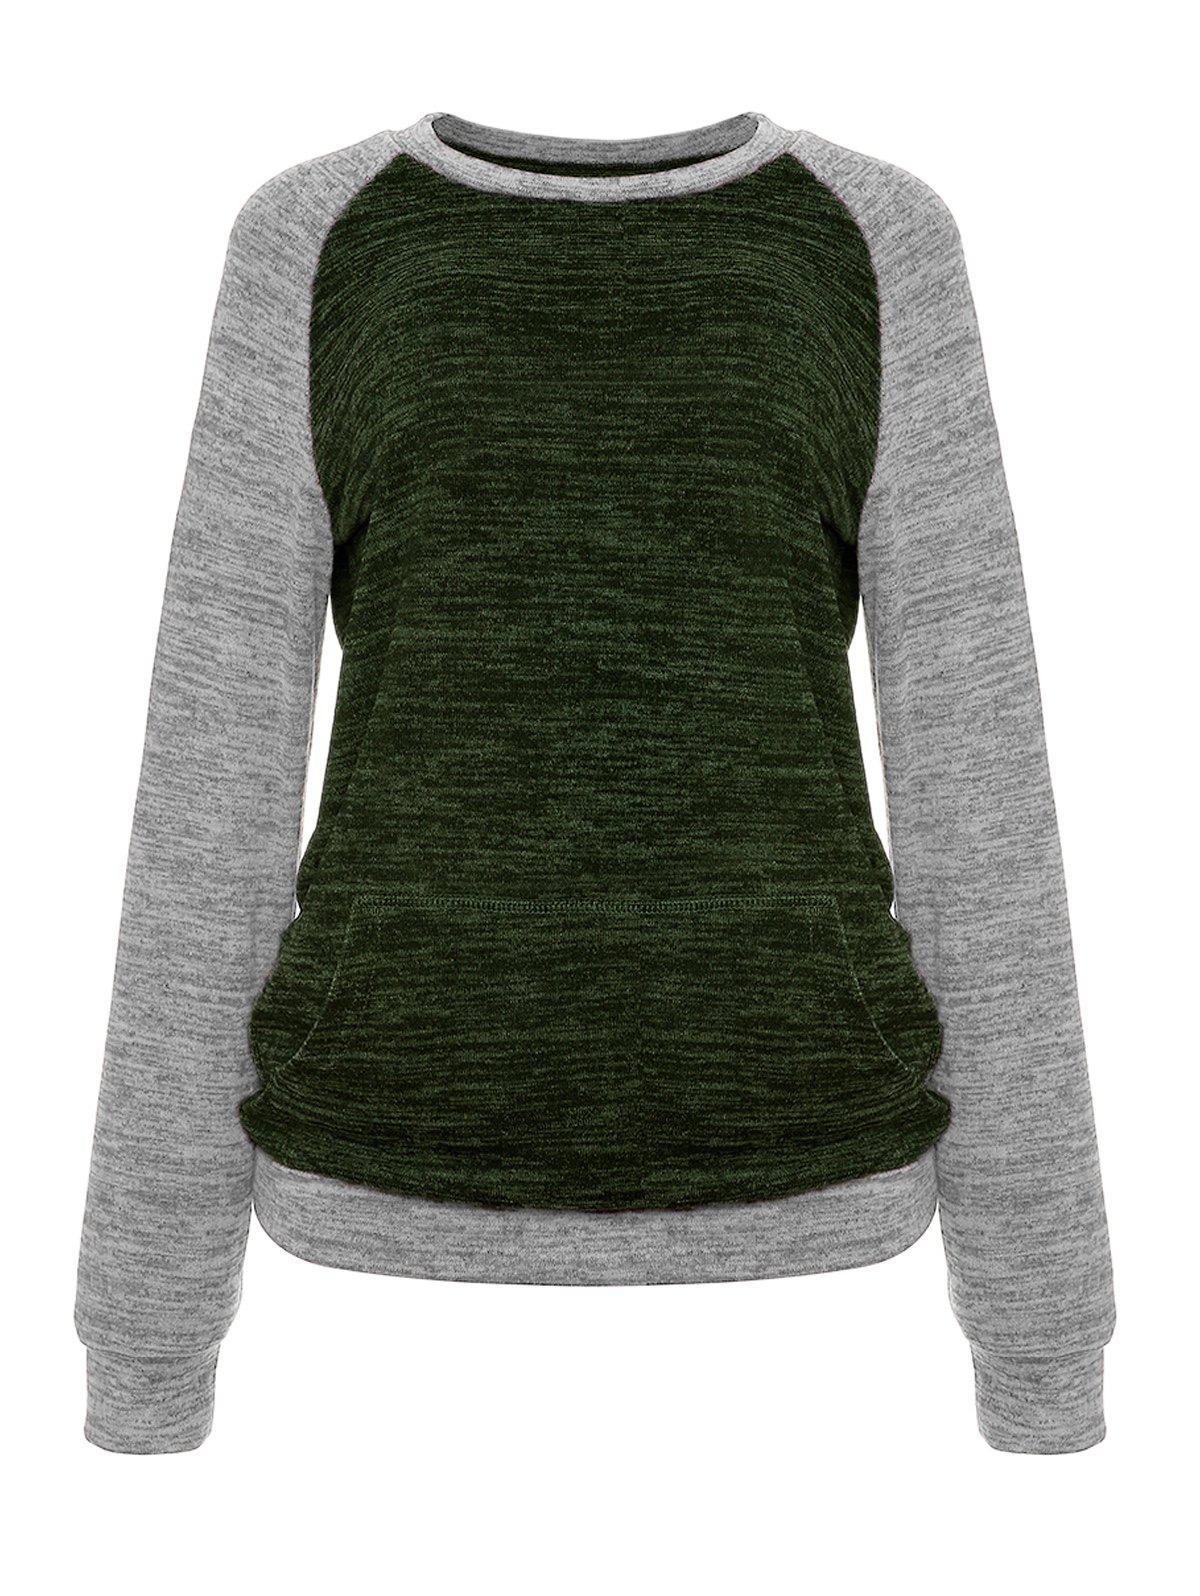 Shops Constrasting Color Patch Pocket Sweater Knitwear T-Shirts